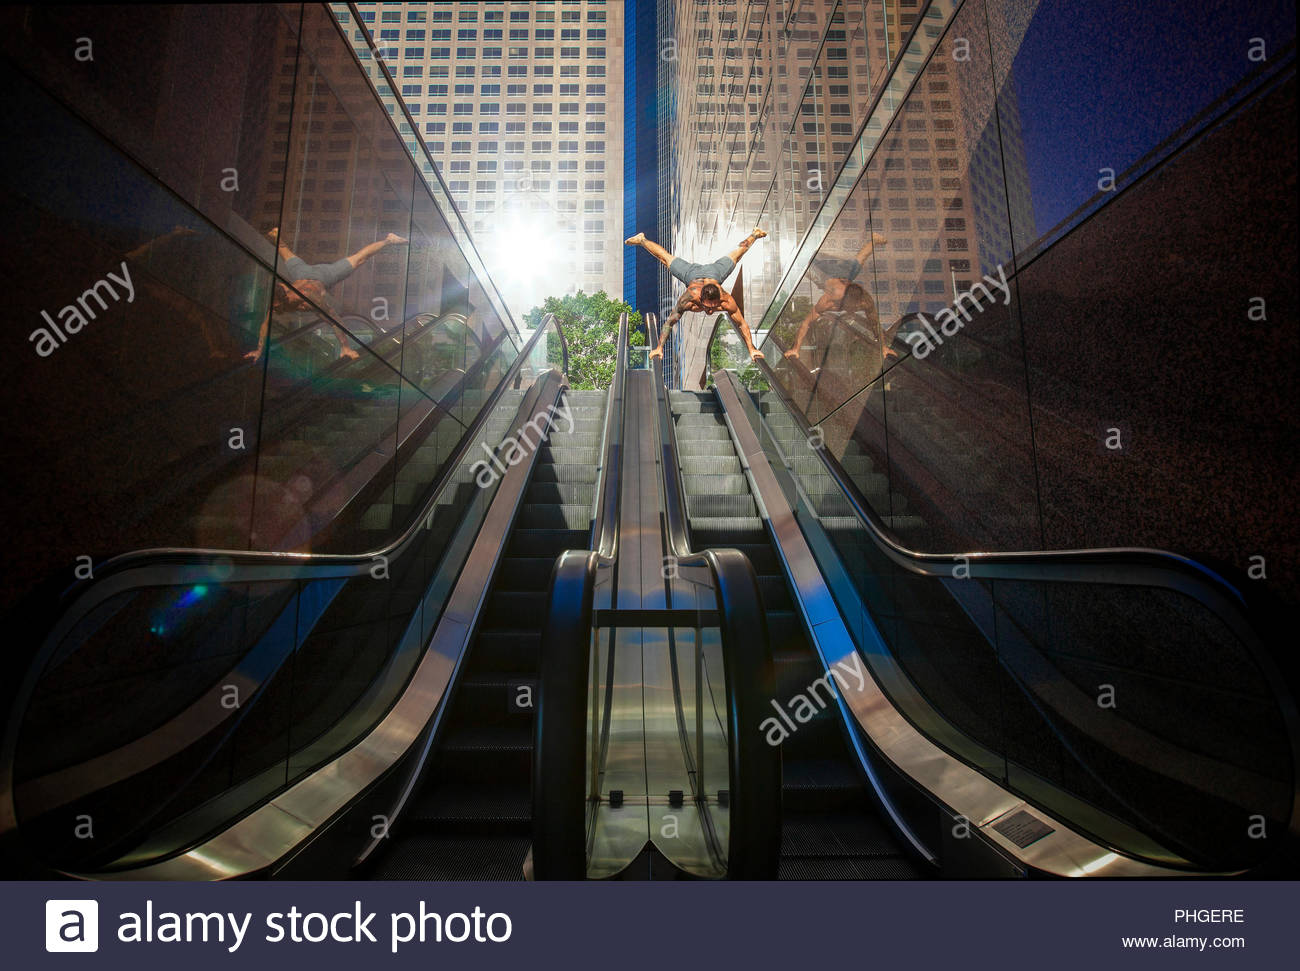 Shirtless man doing handstand on escalator - Stock Image